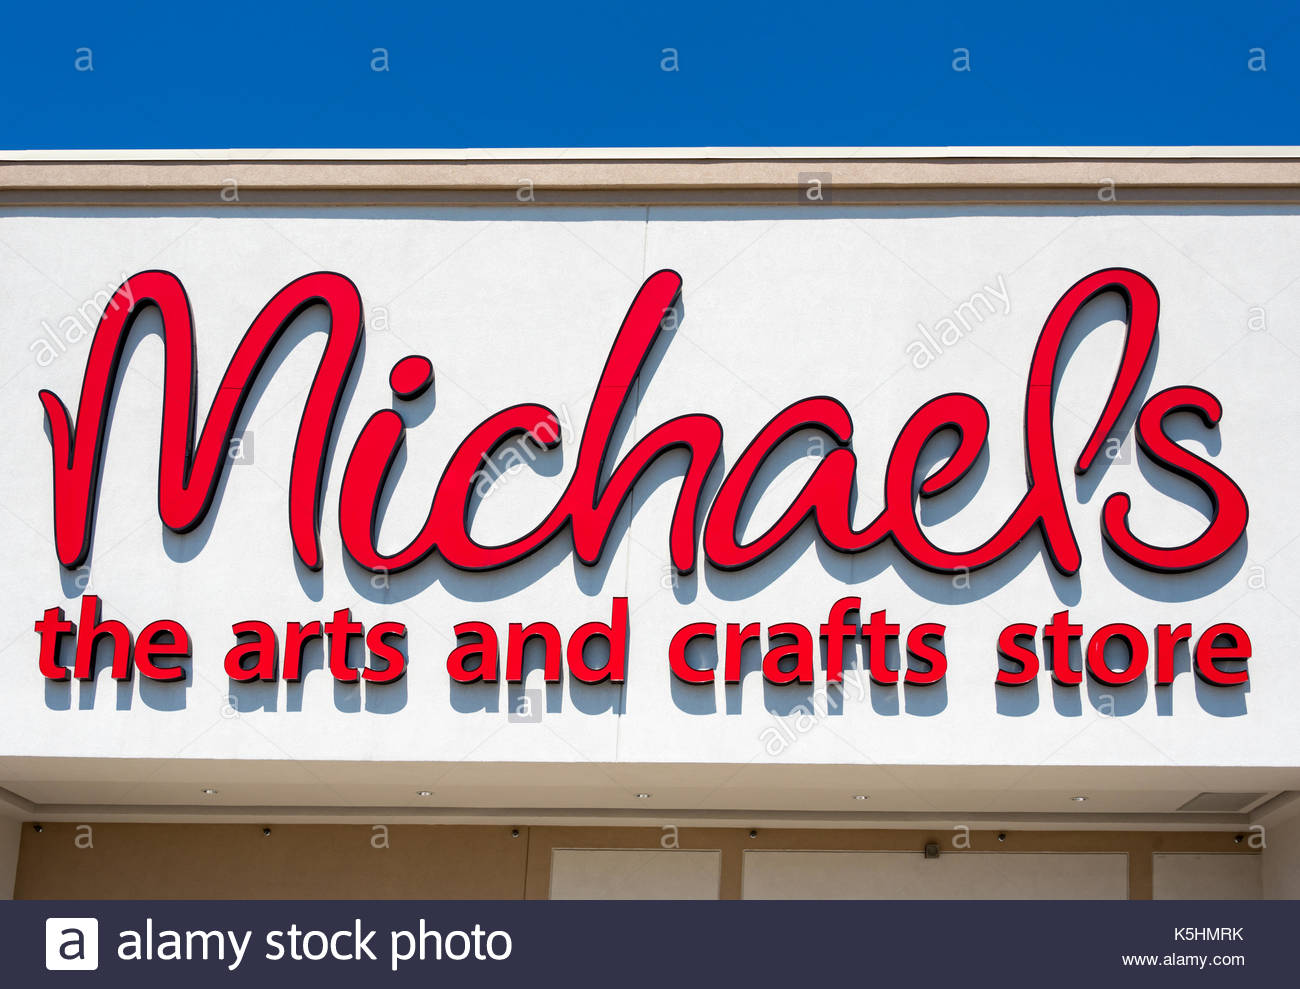 Michaels art store entrance. Michaels is a North American arts and crafts retail chain known for selling high quality artistic merchandise. - Stock Image